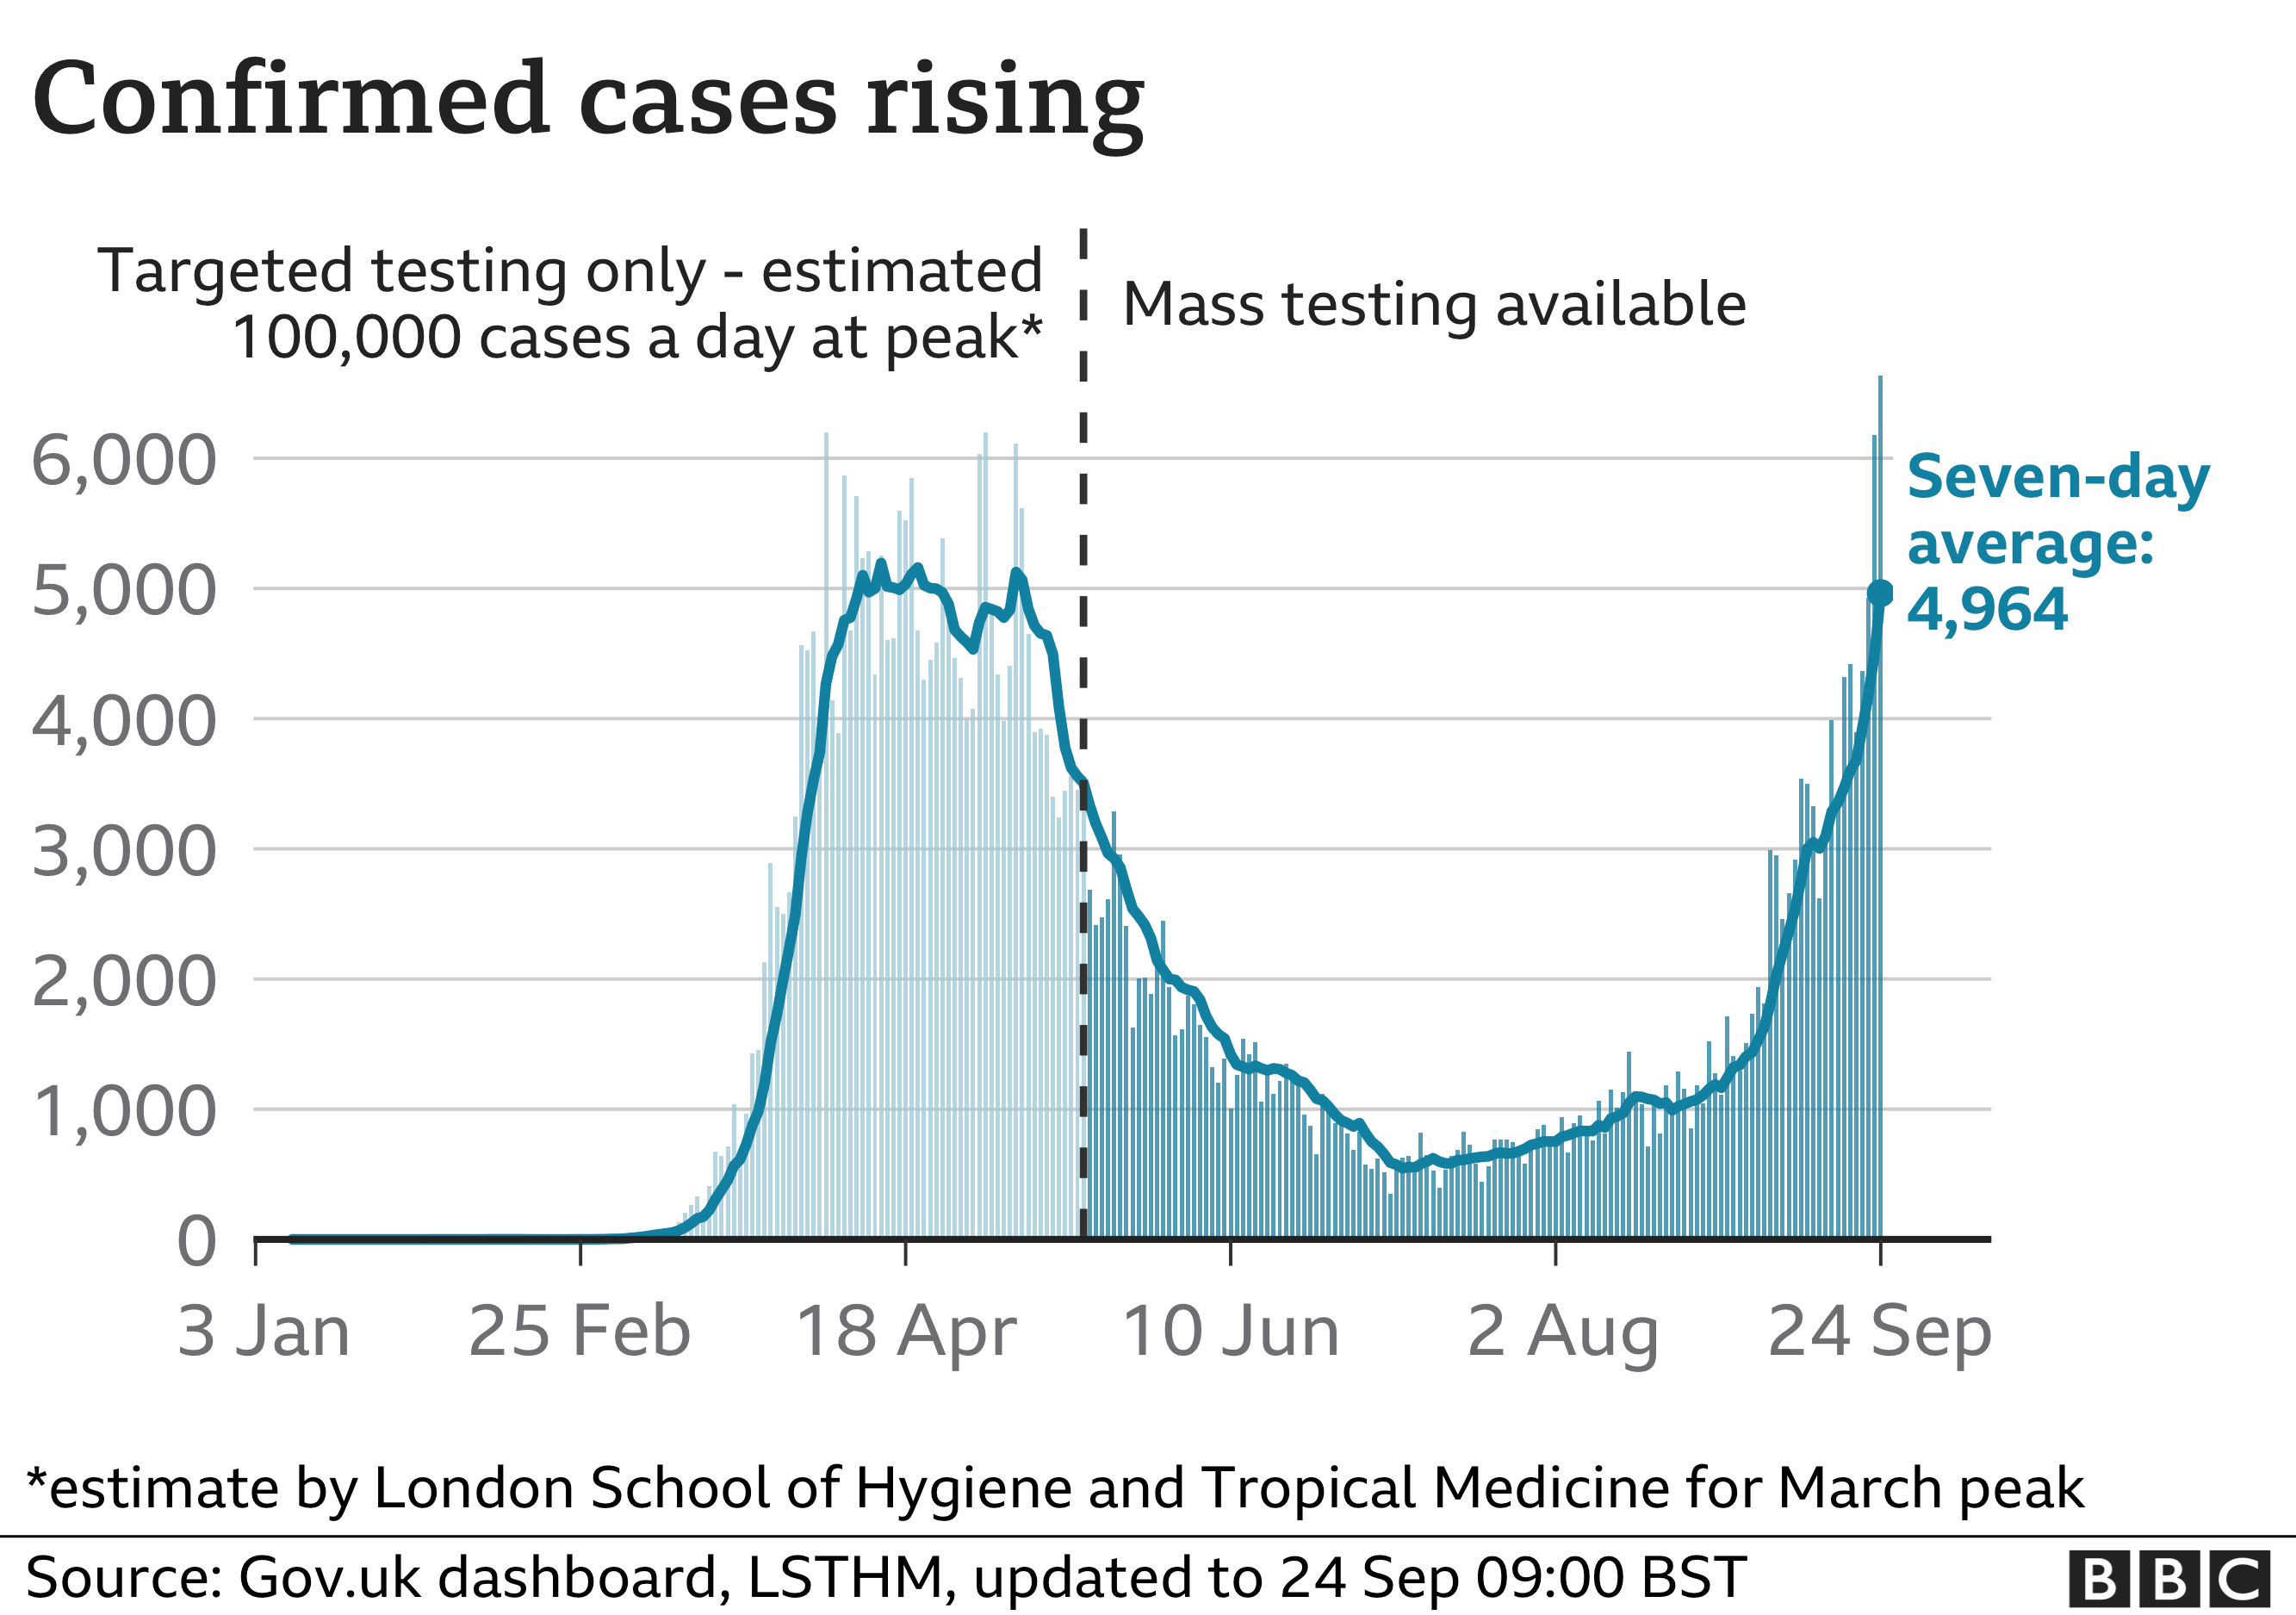 Table showing confirmed UK coronavirus cases is rising